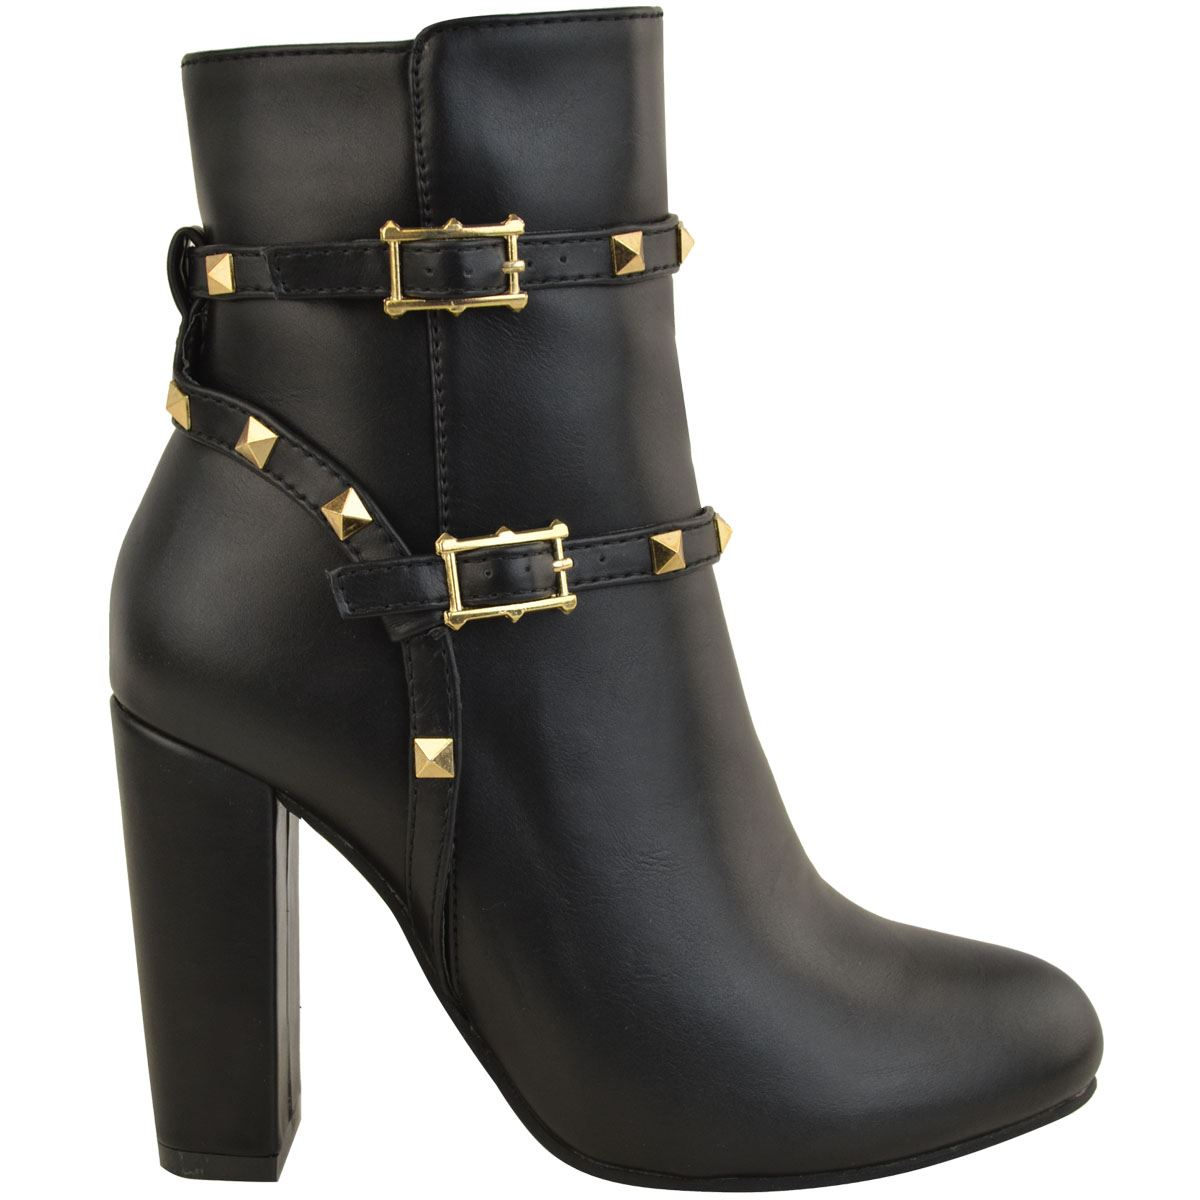 thumbnail 18 - WOMENS-LADIES-LOW-BLOCK-HEEL-CHELSEA-ANKLE-BOOTS-CUT-OUT-LACE-UP-SHOES-NEW-SIZE